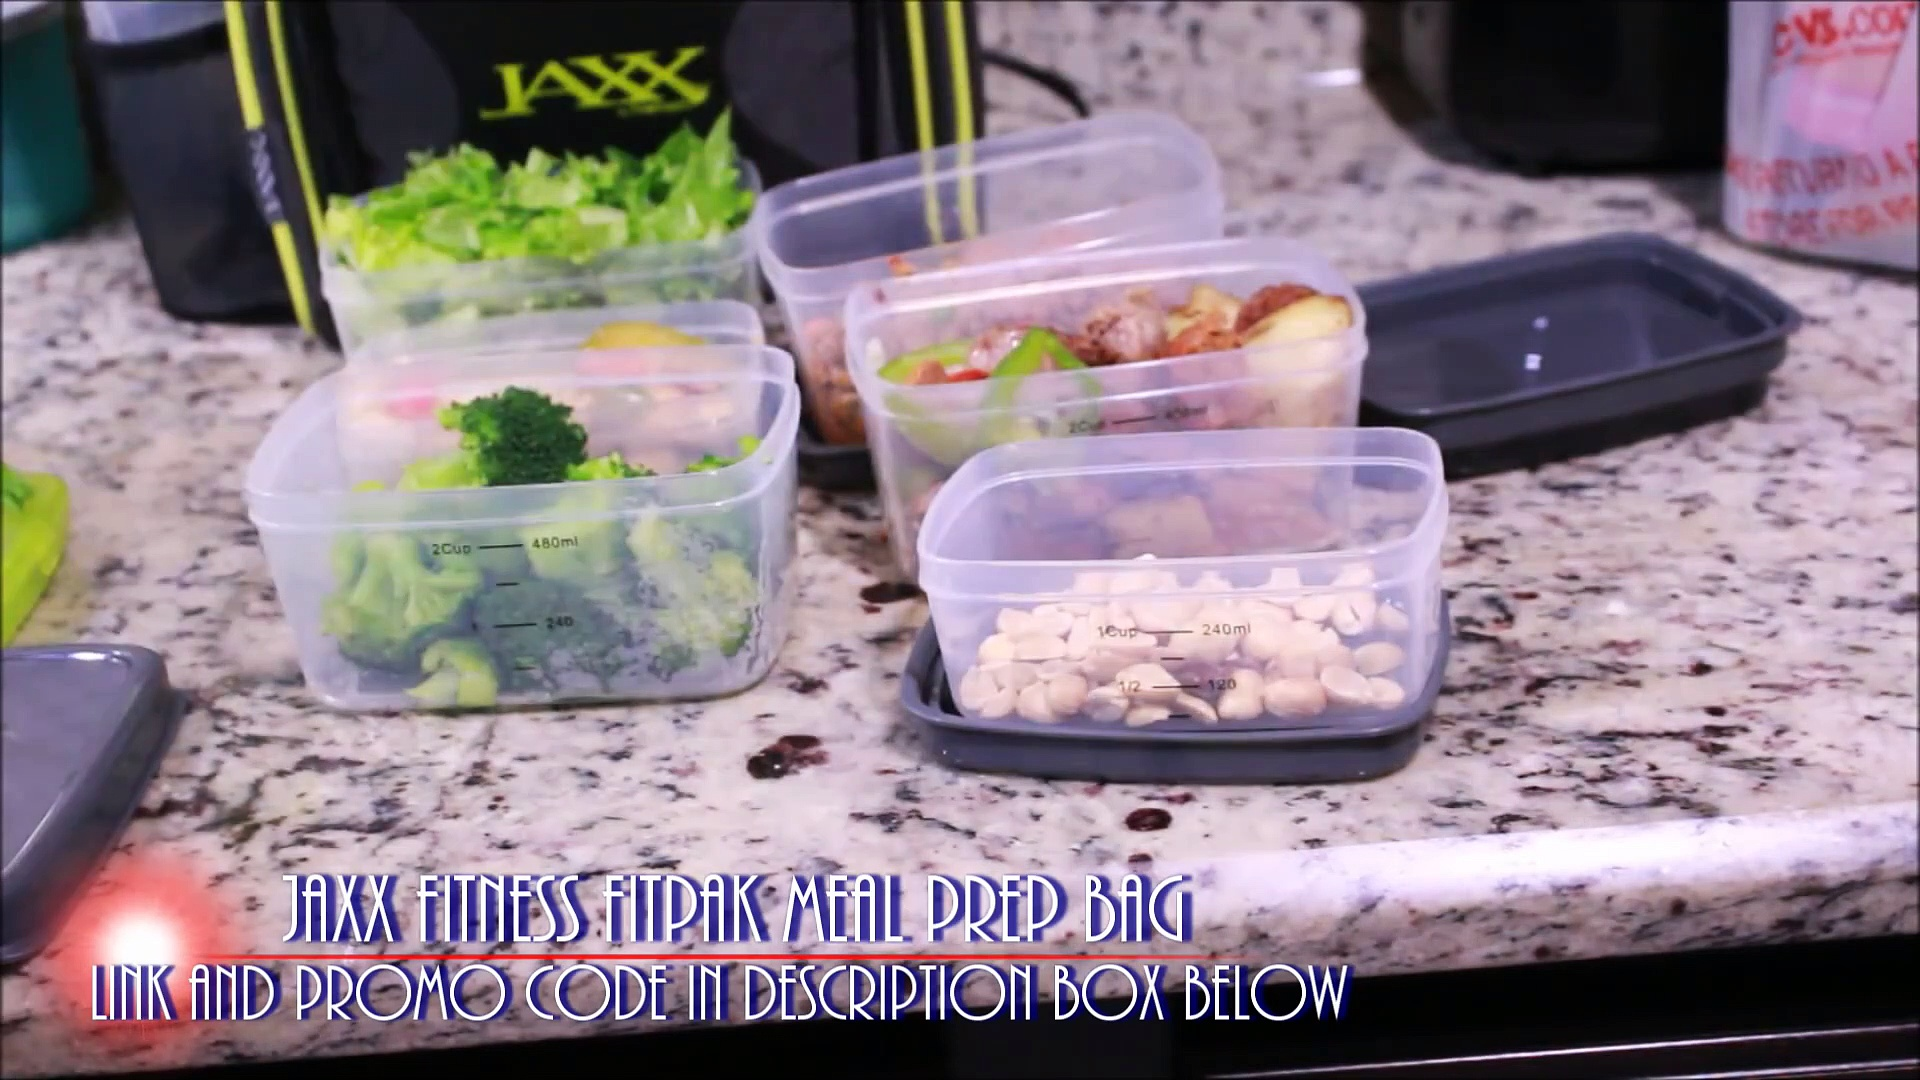 00:0000:34      00:35 EPIC 25$ 5 Day Meal Prep For Weight loss & Fitness(000920.094-000950.099) EPIC 25$ 5 Day Meal Prep For Weight loss & Fitness(000920.094-000950.099) theo Lancuhmay 126 lượt xem 00:33 EPIC 25$ 5 Day Meal Prep For Weight loss & Fitnes